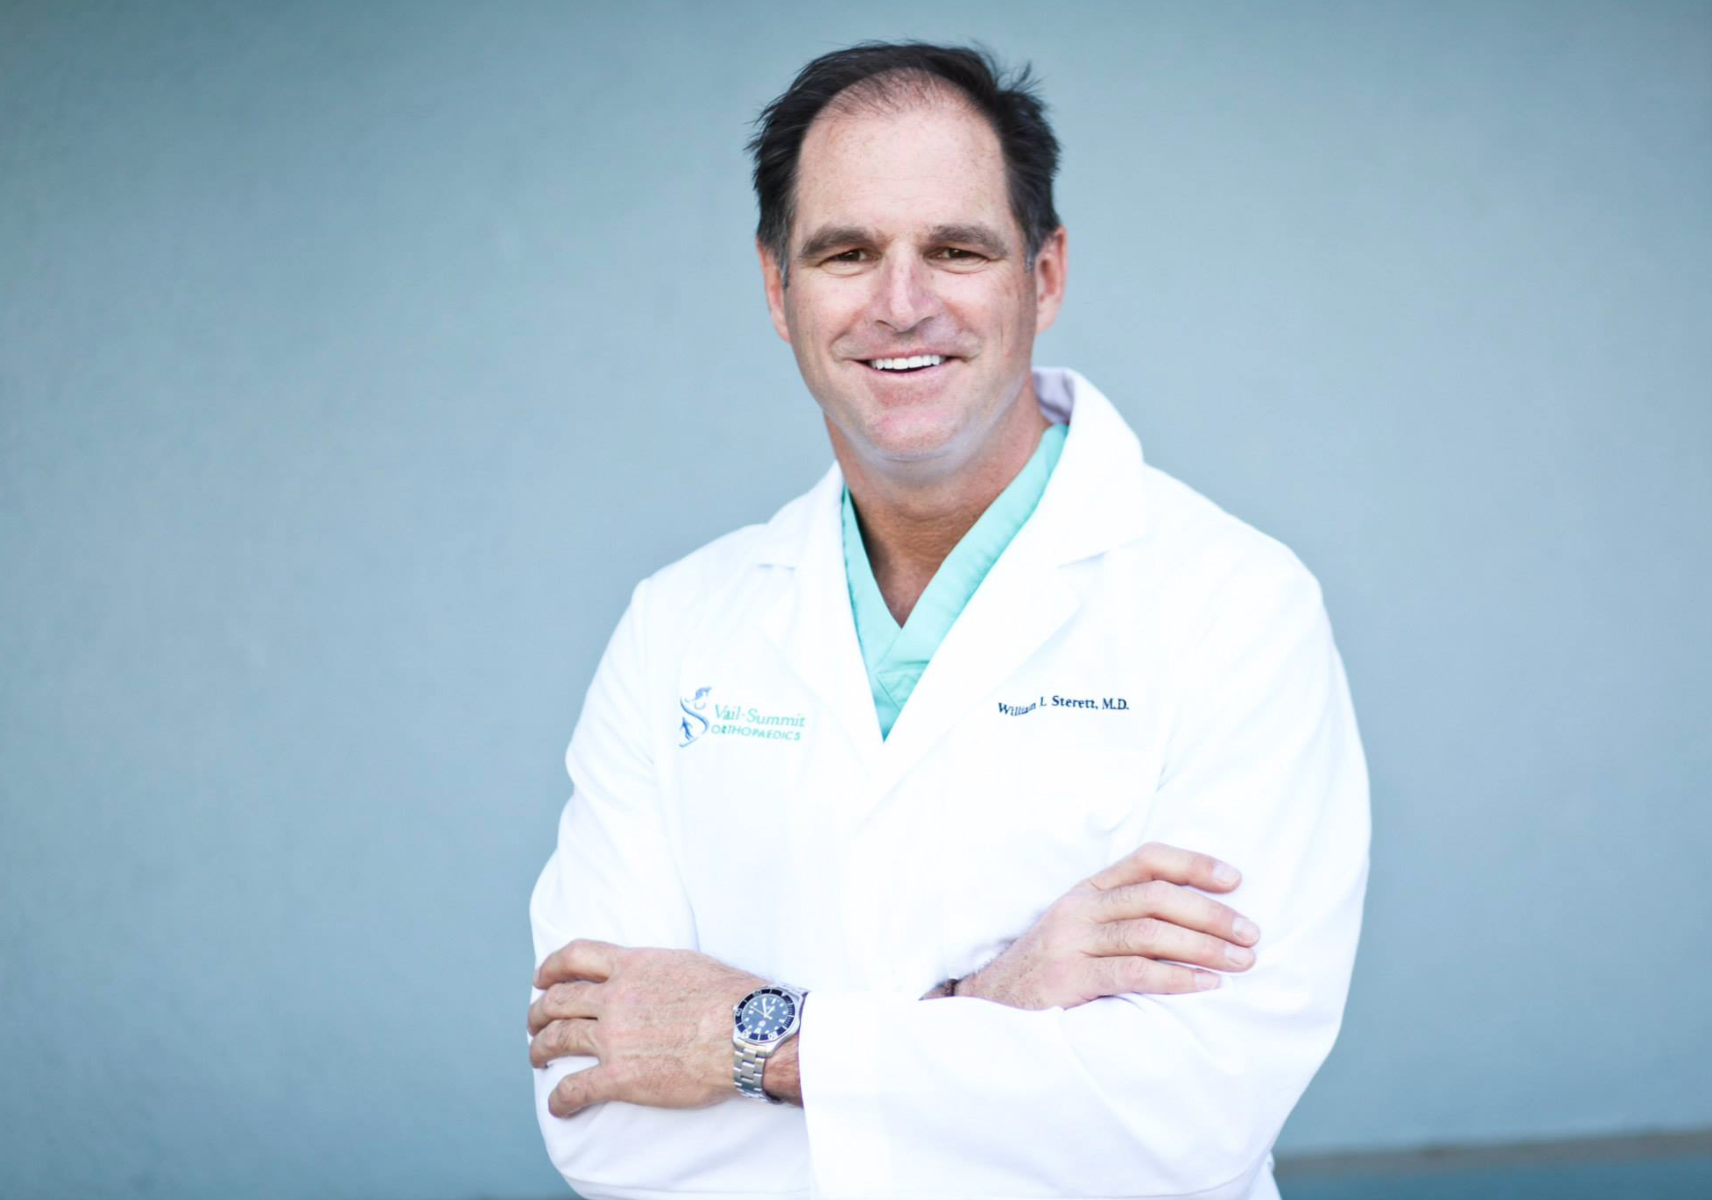 Dr. Sterett is the Head Physician for the U.S. Women's Ski Team.For more about Dr. Bill Sterett, visit www.drsterett.com